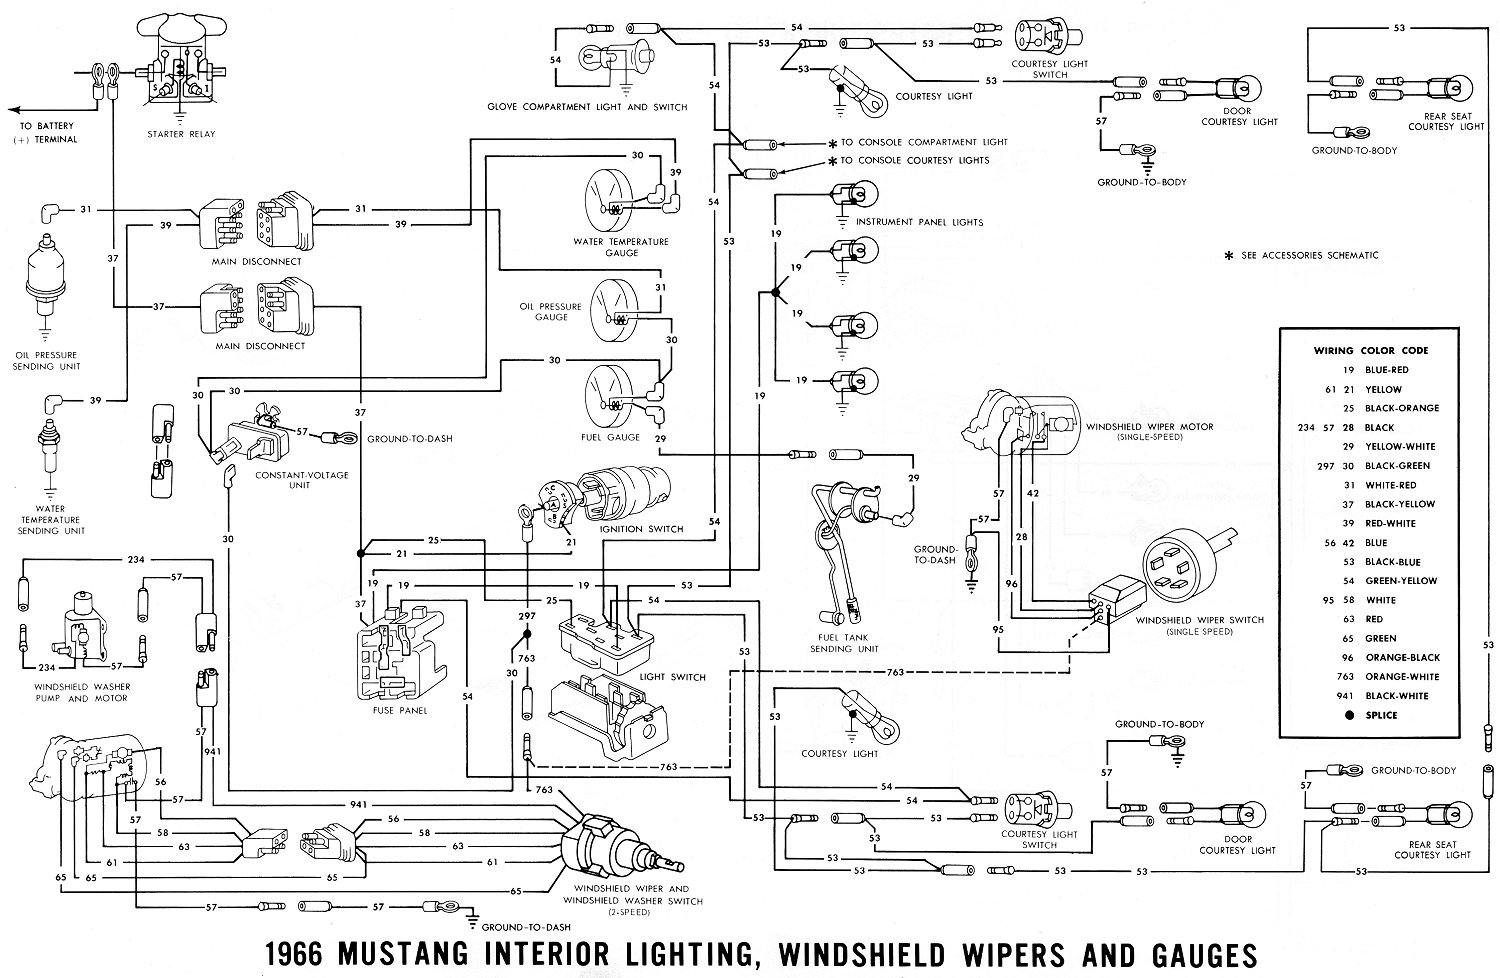 1966 Mustang Wiring Diagrams - Average Joe Restoration | Turn Signal Wiring Diagram For 1966 Mustang |  | Average Joe Restoration